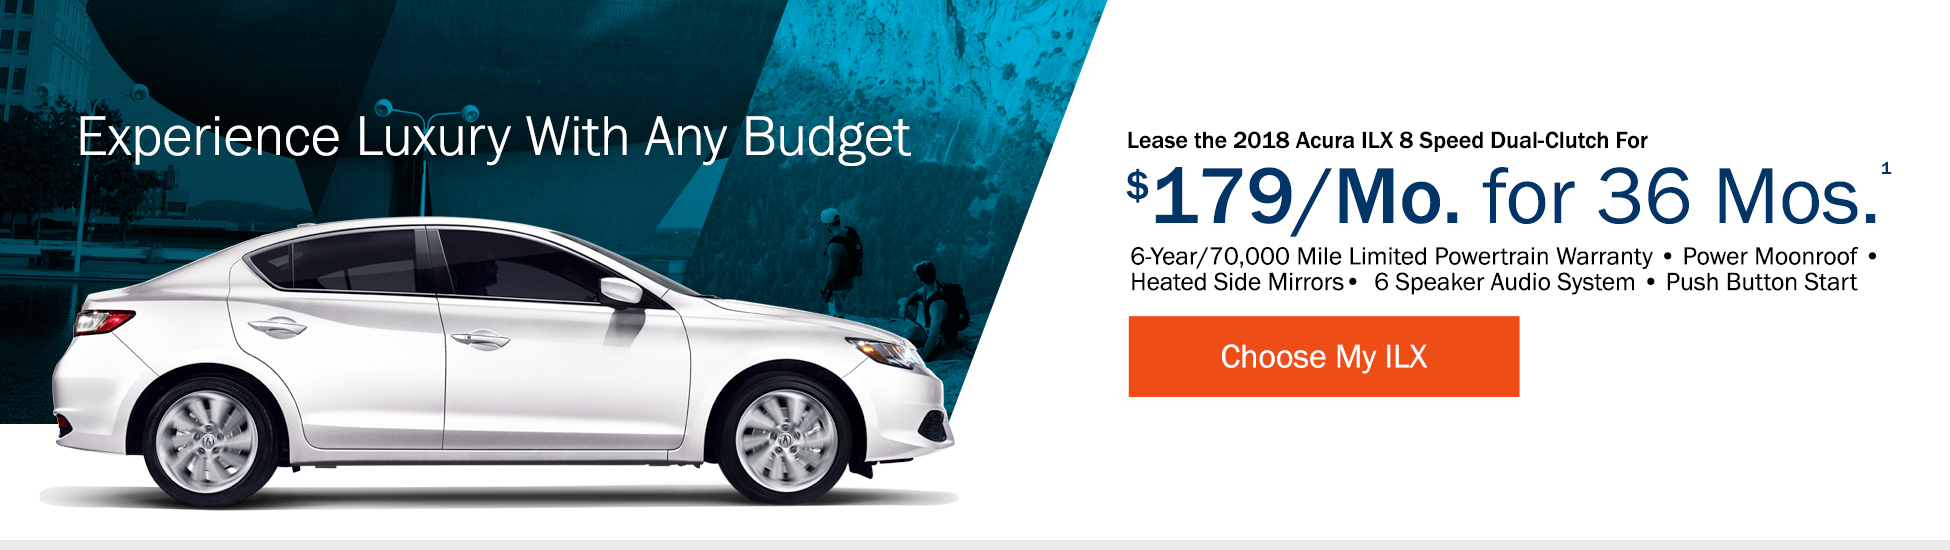 Lease the 2018 Acura ILX 8 Speed Dual-Clutch for $199 per month for 36 months - Shop ILX